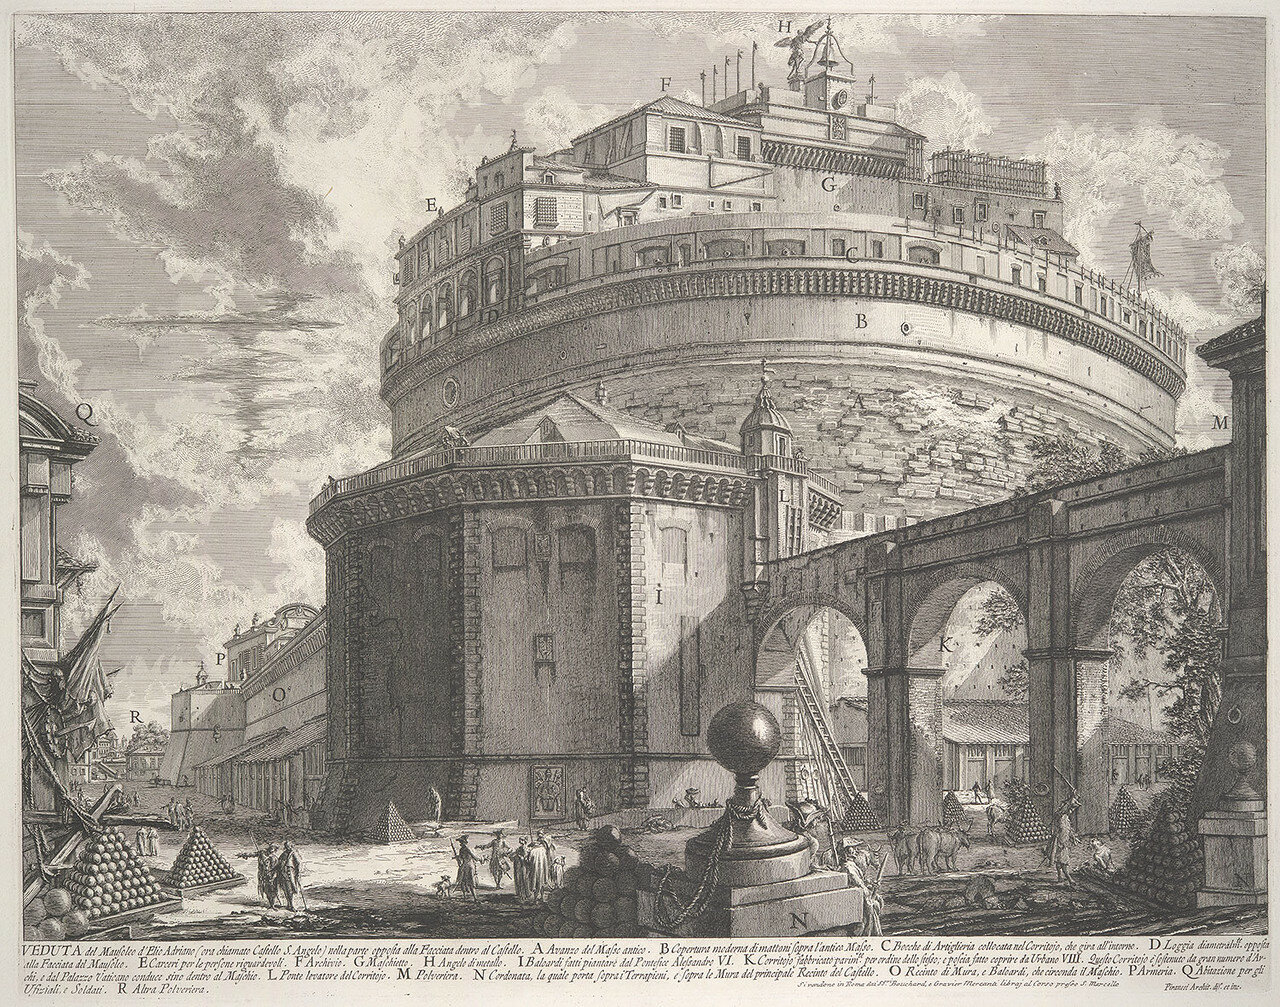 Working Title/Artist: Veduta del Mausoleo d'Elio Adraiano, ora chiamato Castello S. Angelo (View of the Mausoleum of Hadrian, now called the Castel S. Angelo): From Vedute di Roma (Views of Rome)Department: Drawings & PrintsCulture/Period/Location: HB